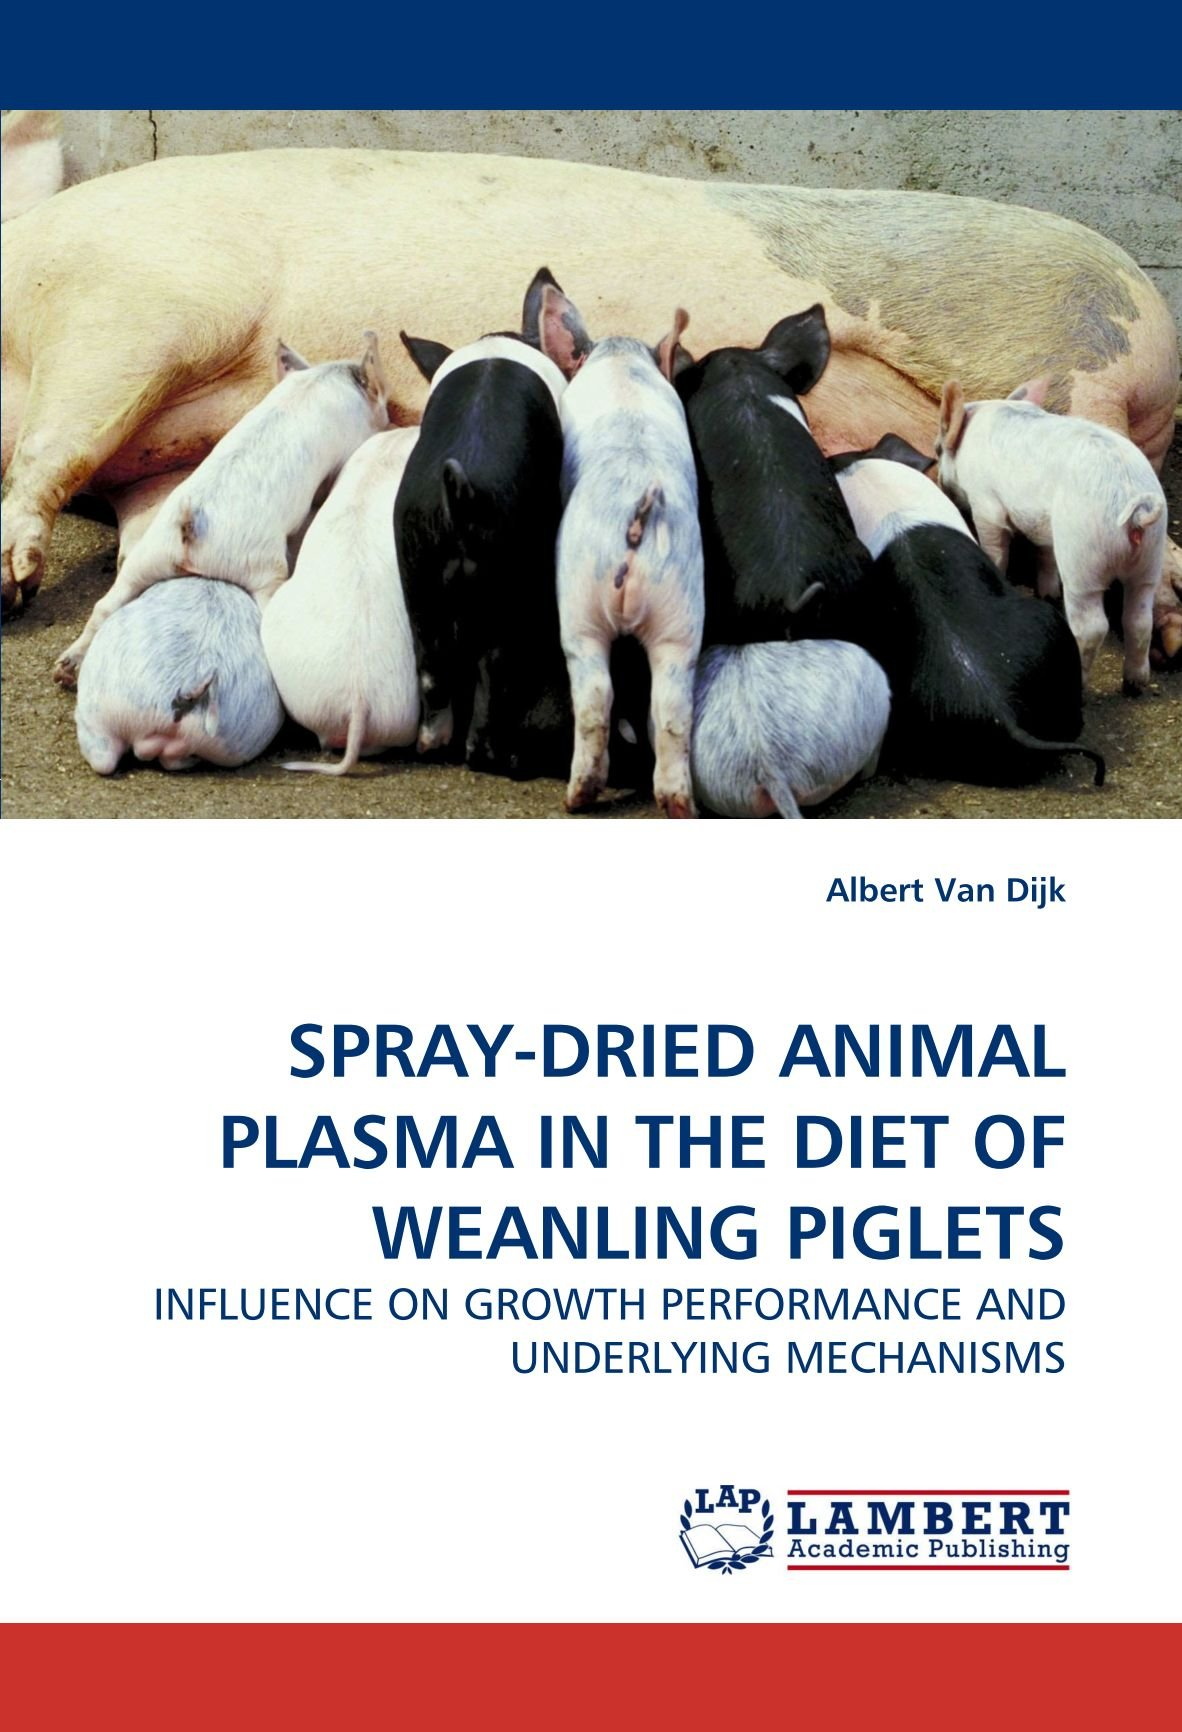 SPRAY-DRIED ANIMAL PLASMA IN THE DIET OF WEANLING PIGLETS: INFLUENCE ON GROWTH PERFORMANCE AND UNDERLYING MECHANISMS pdf